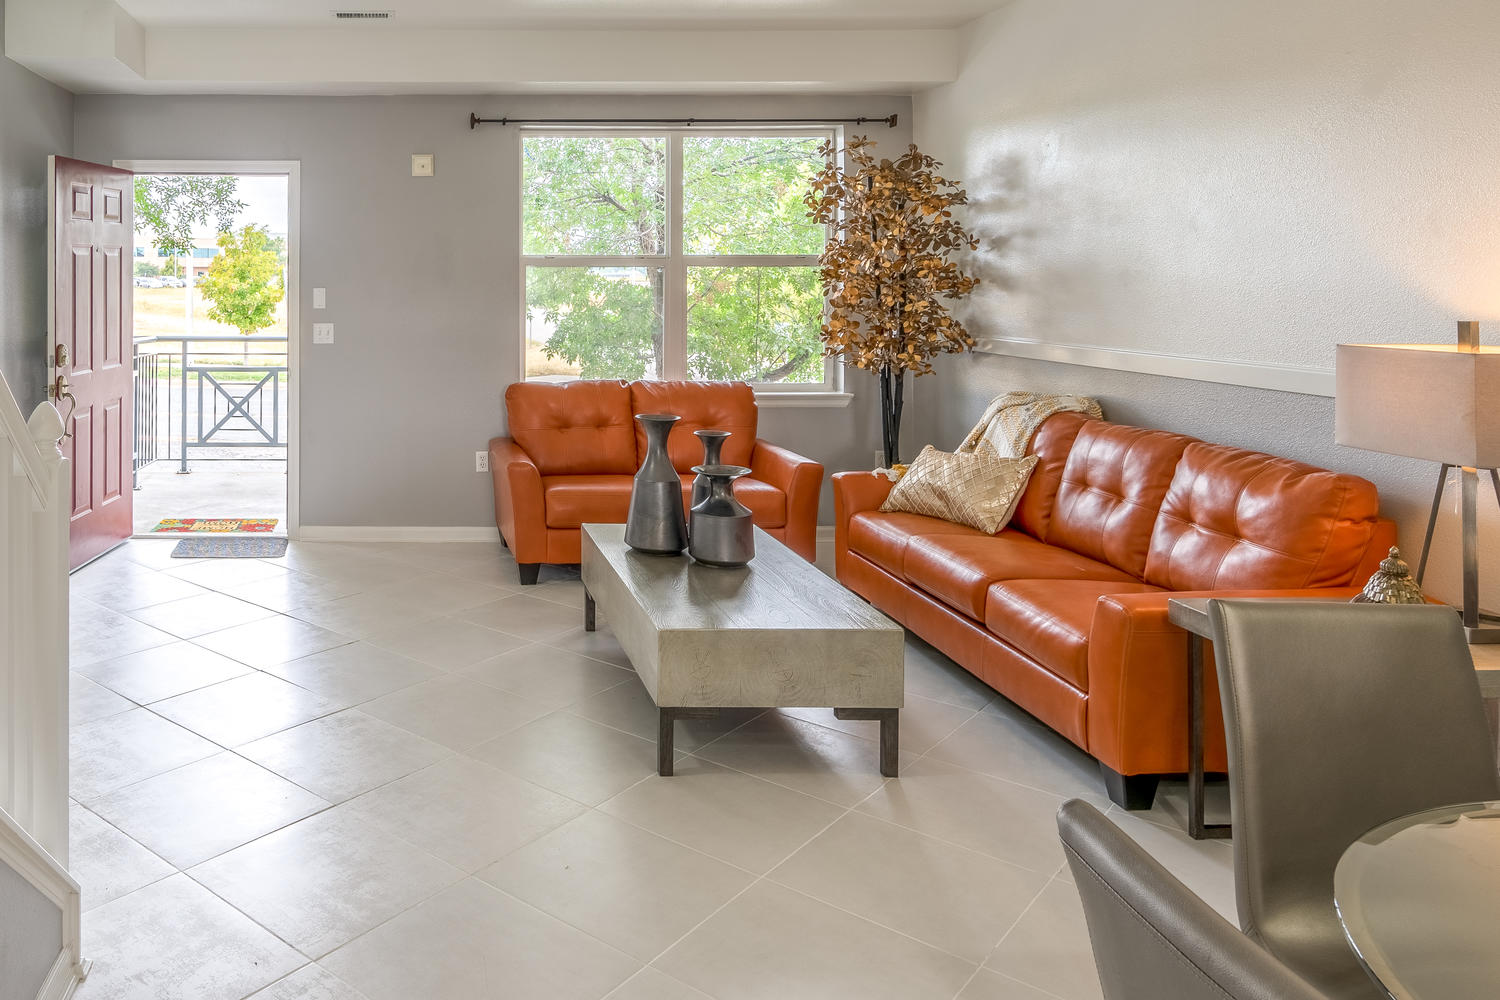 Condominium for Sale at Enjoy a bright open floor plan w designer touches and finishes throughout 14891 East Centrepoint Drive Unit F Aurora, Colorado, 80012 United States